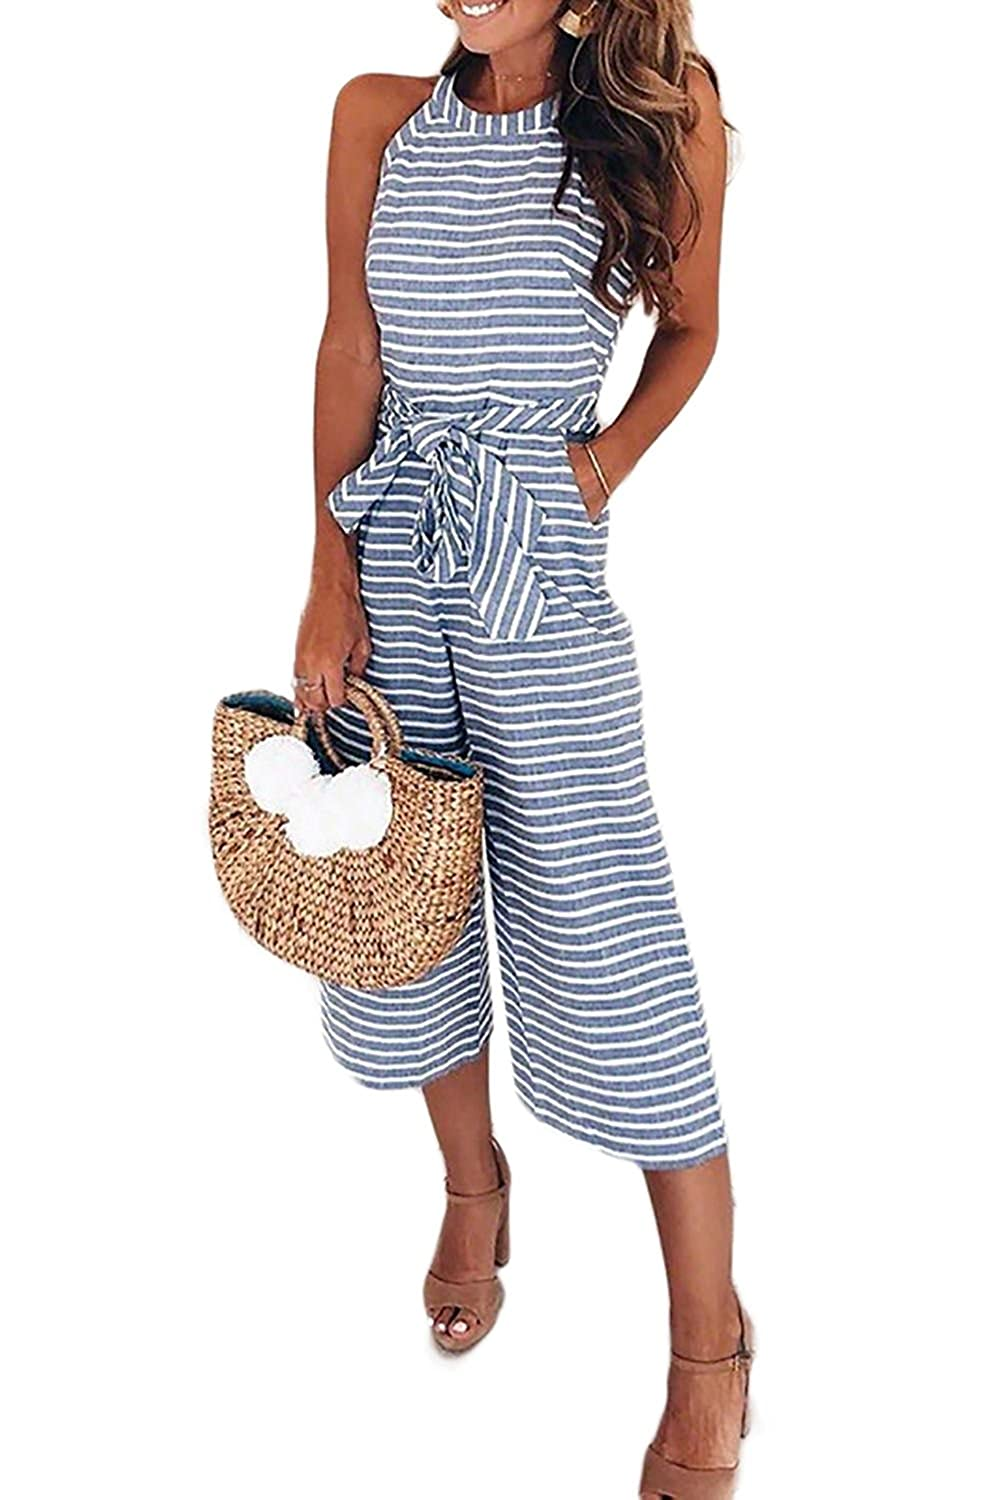 b1dfe68ab51 Amazon.com  Alelly Women s Summer Jumpsuits Striped Tie Back Sleeveless  Backless Wide Long Pants Rompers  Clothing